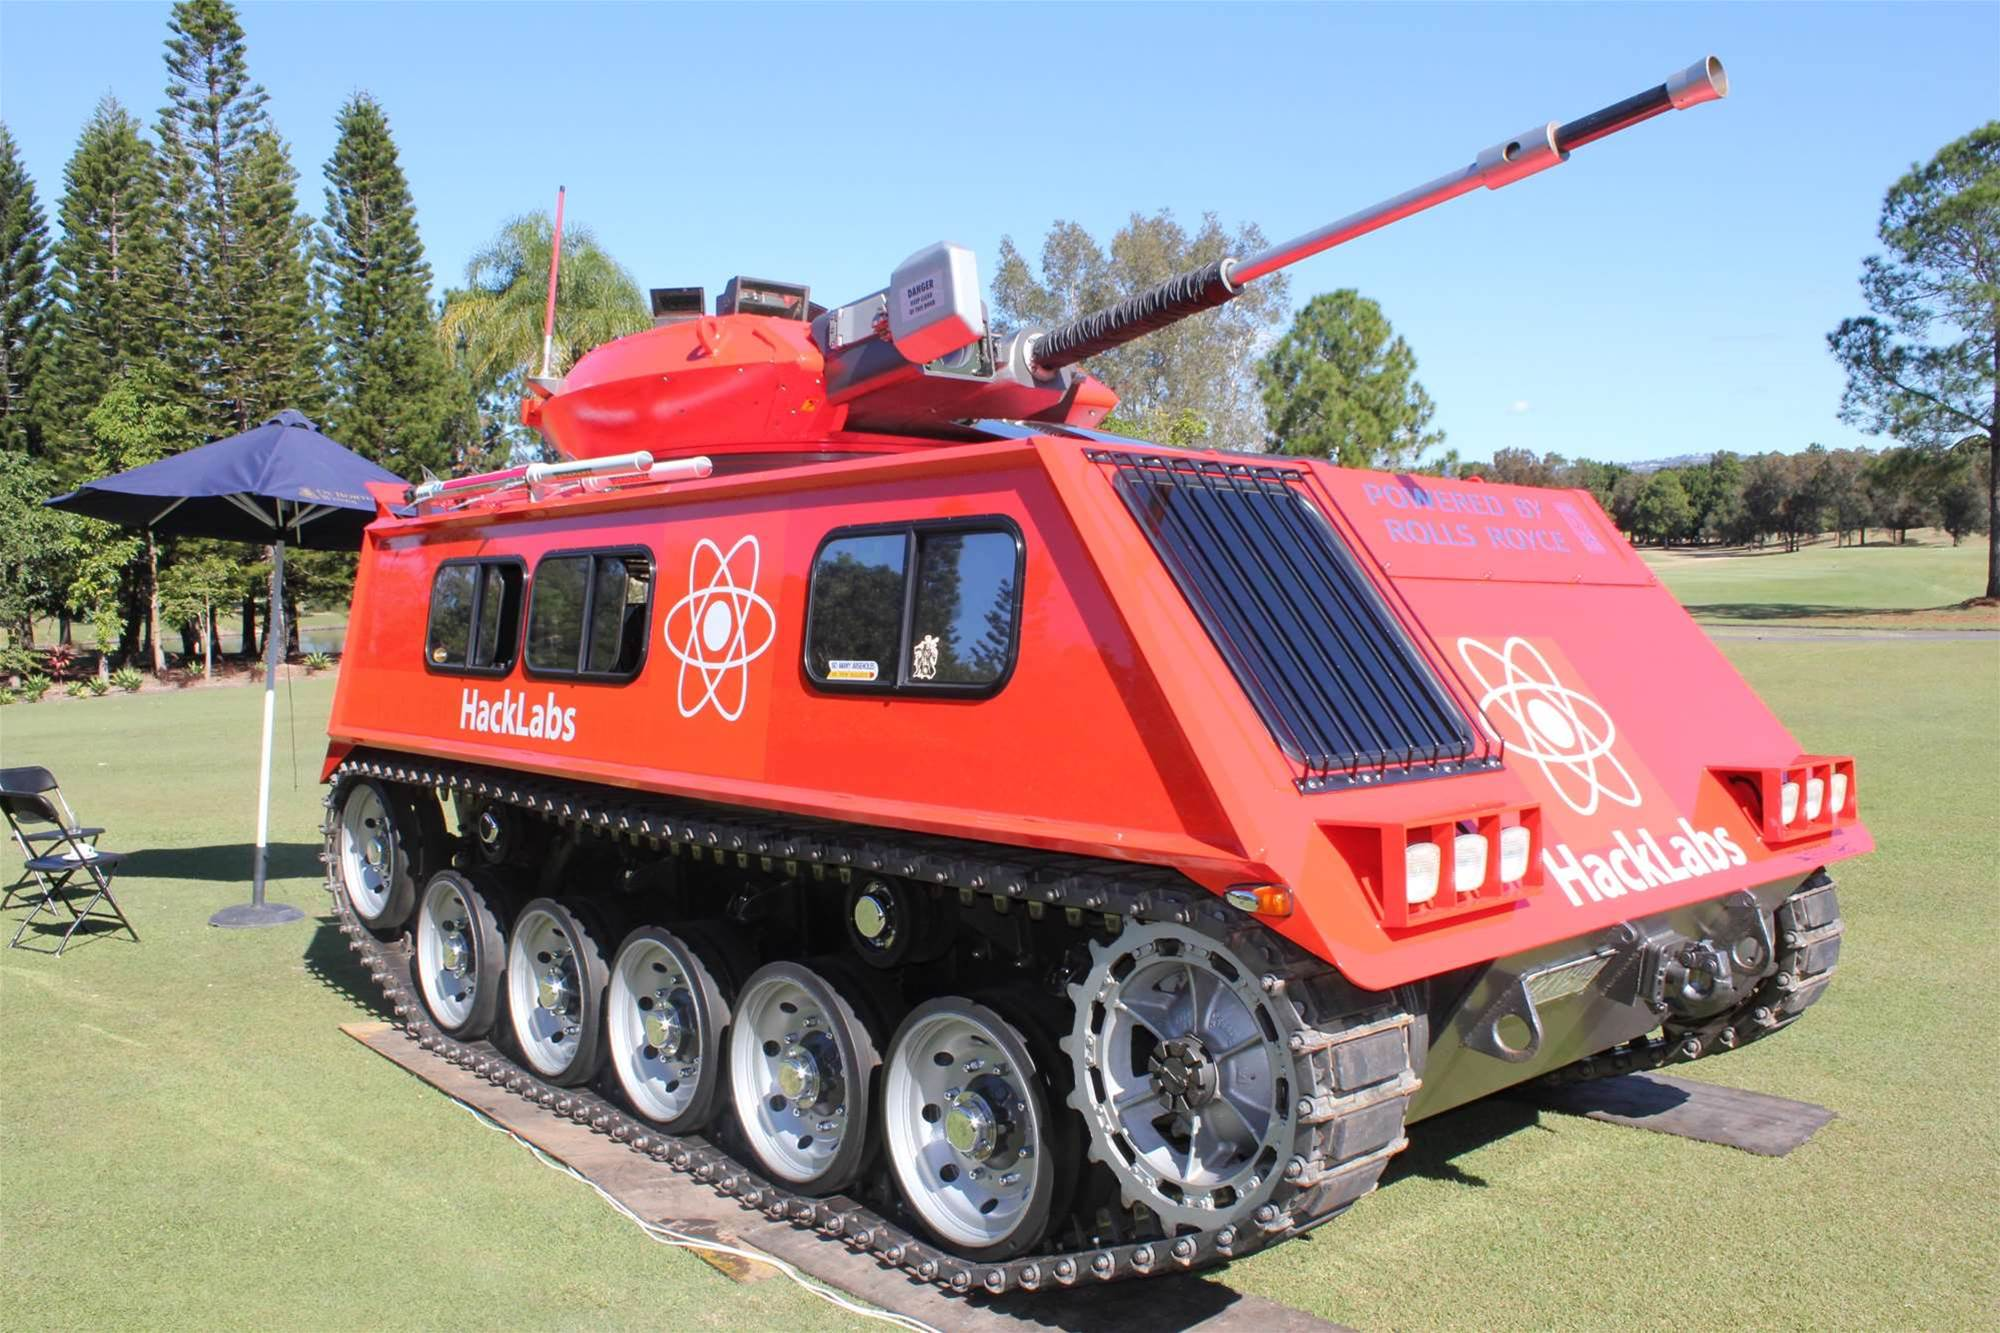 The M113 tank parked at AusCERT. Hacklabs hired the vehicle to promote its red team penetration testing.